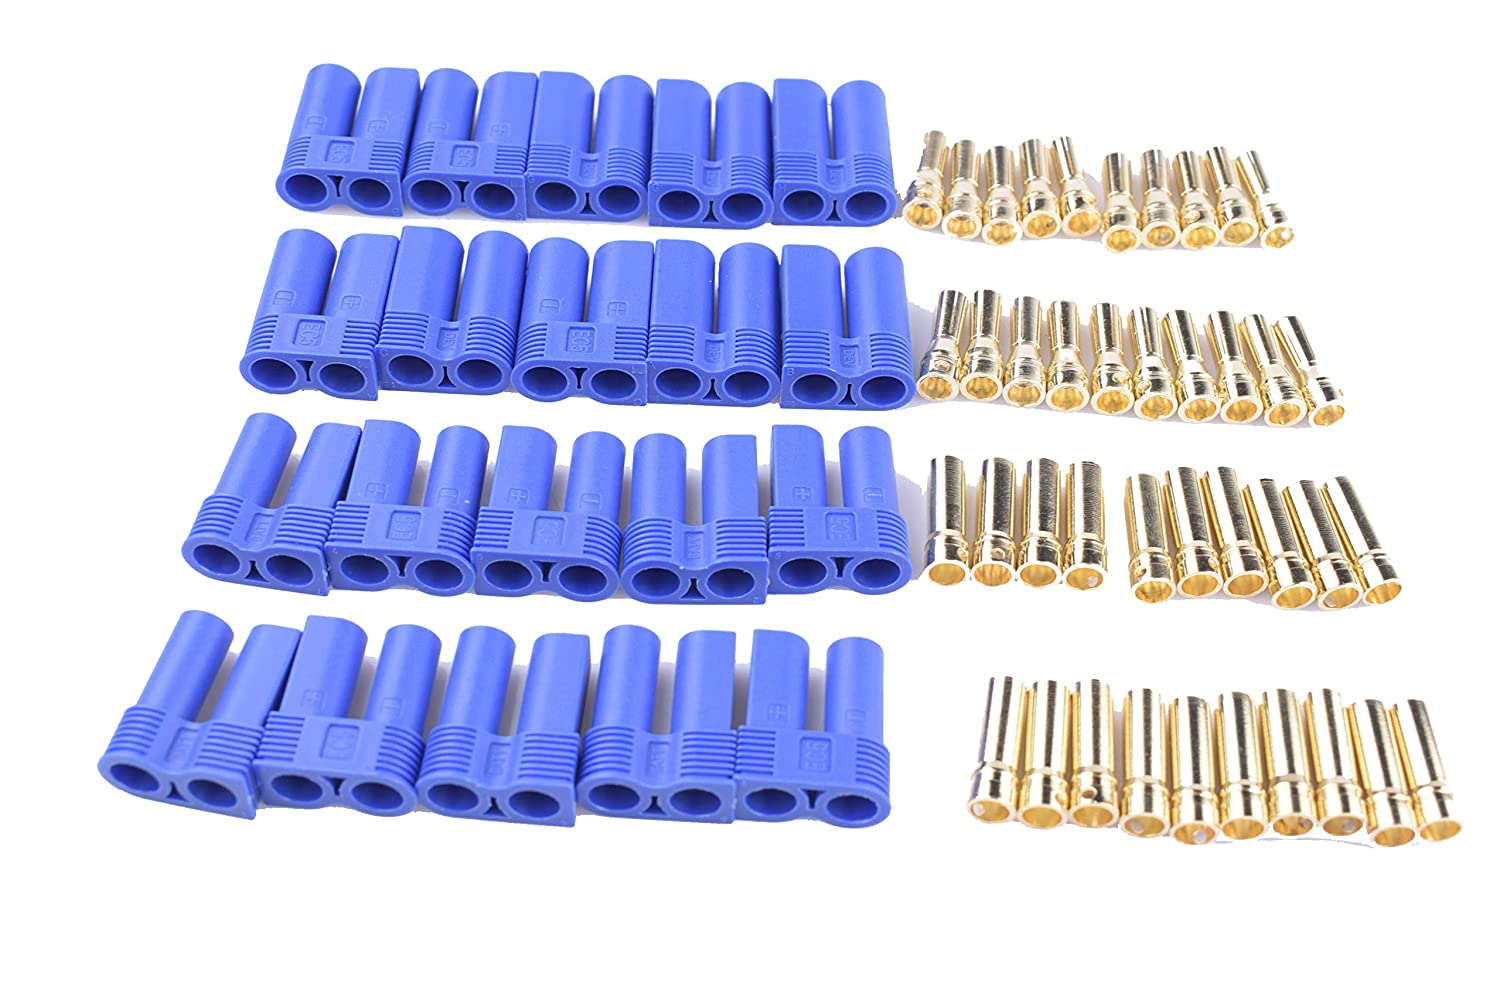 Hengfuntong-Elec 10 Pairs EC5 Battery Connector Plugs for RC Products Bullet Banana Style Lipo Male Female Sets